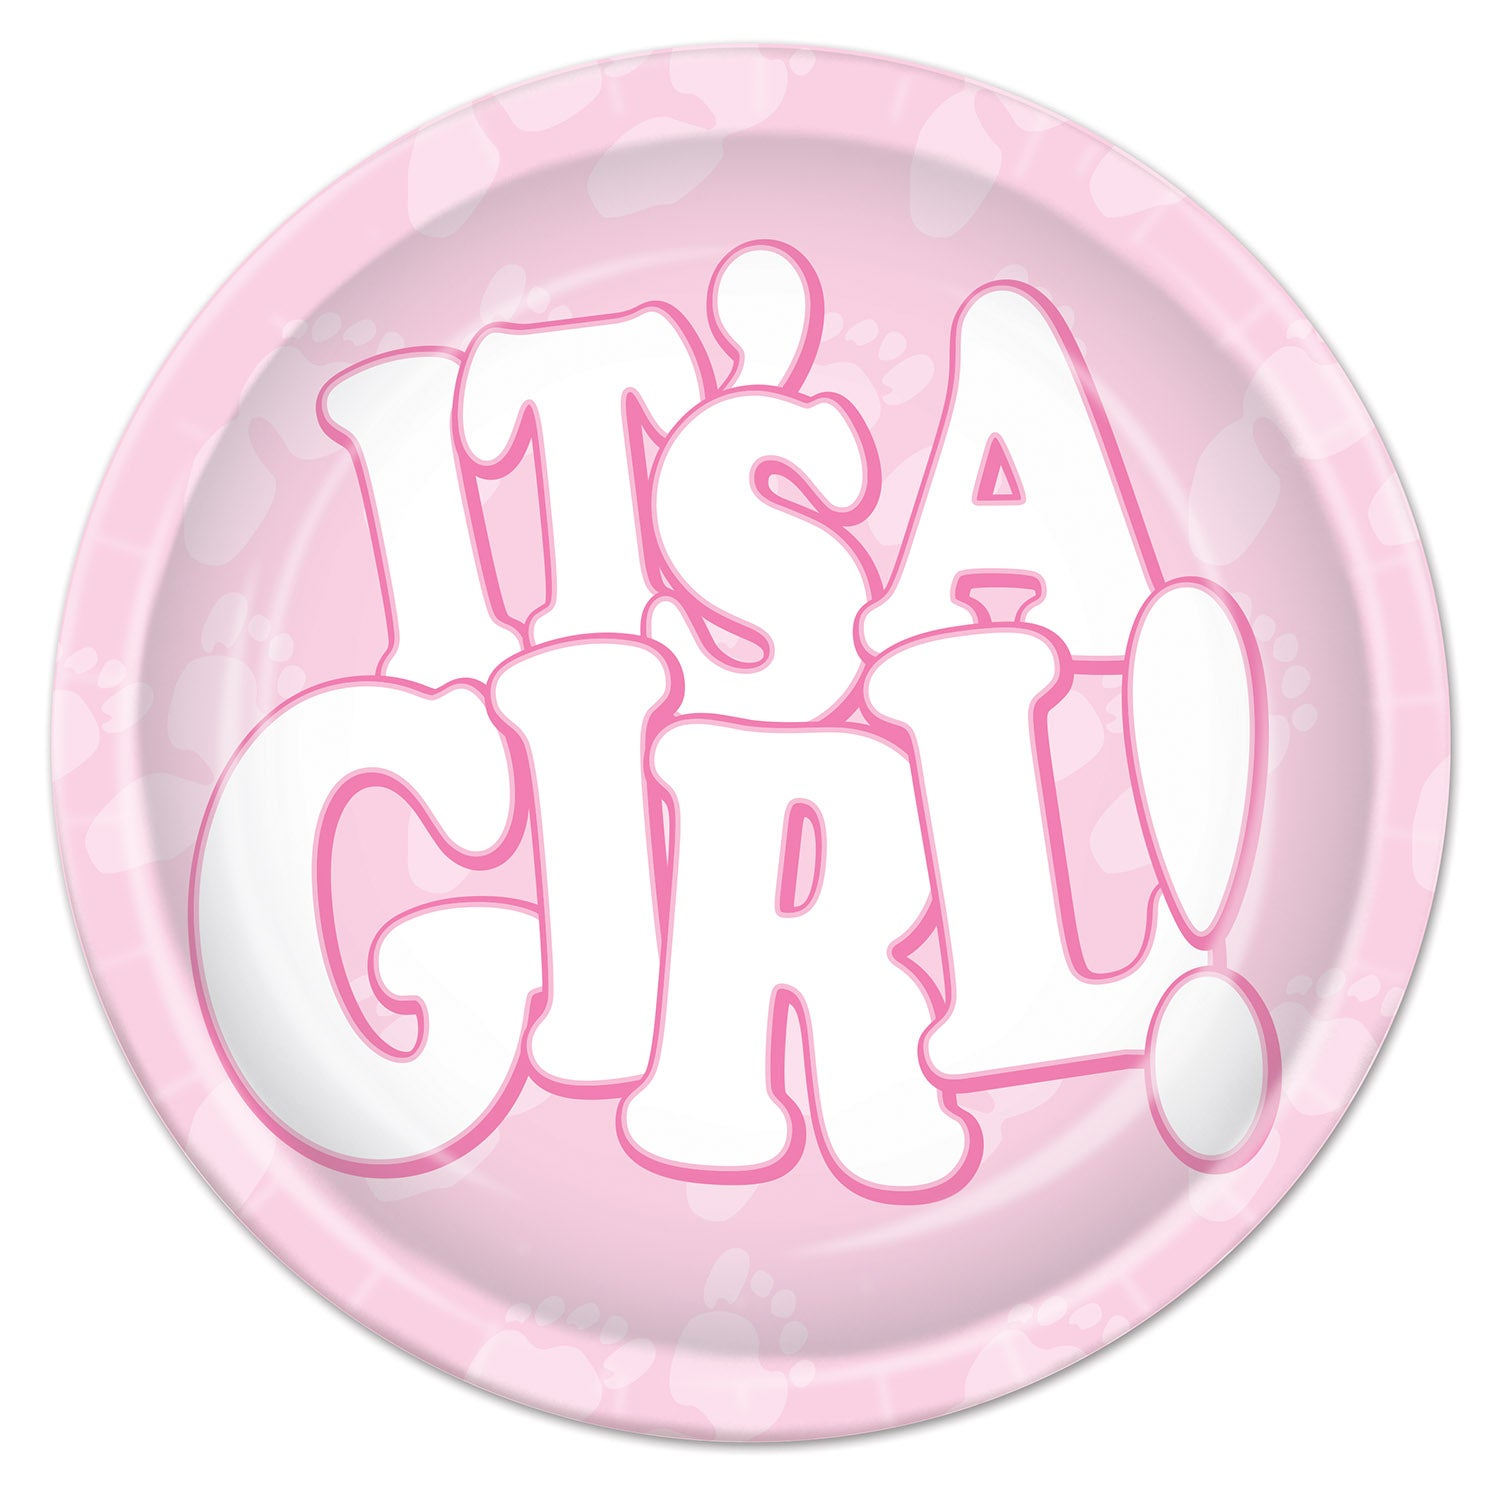 It's A Girl! Plates (8/Pkg) by Beistle - Baby Shower Theme Decorations